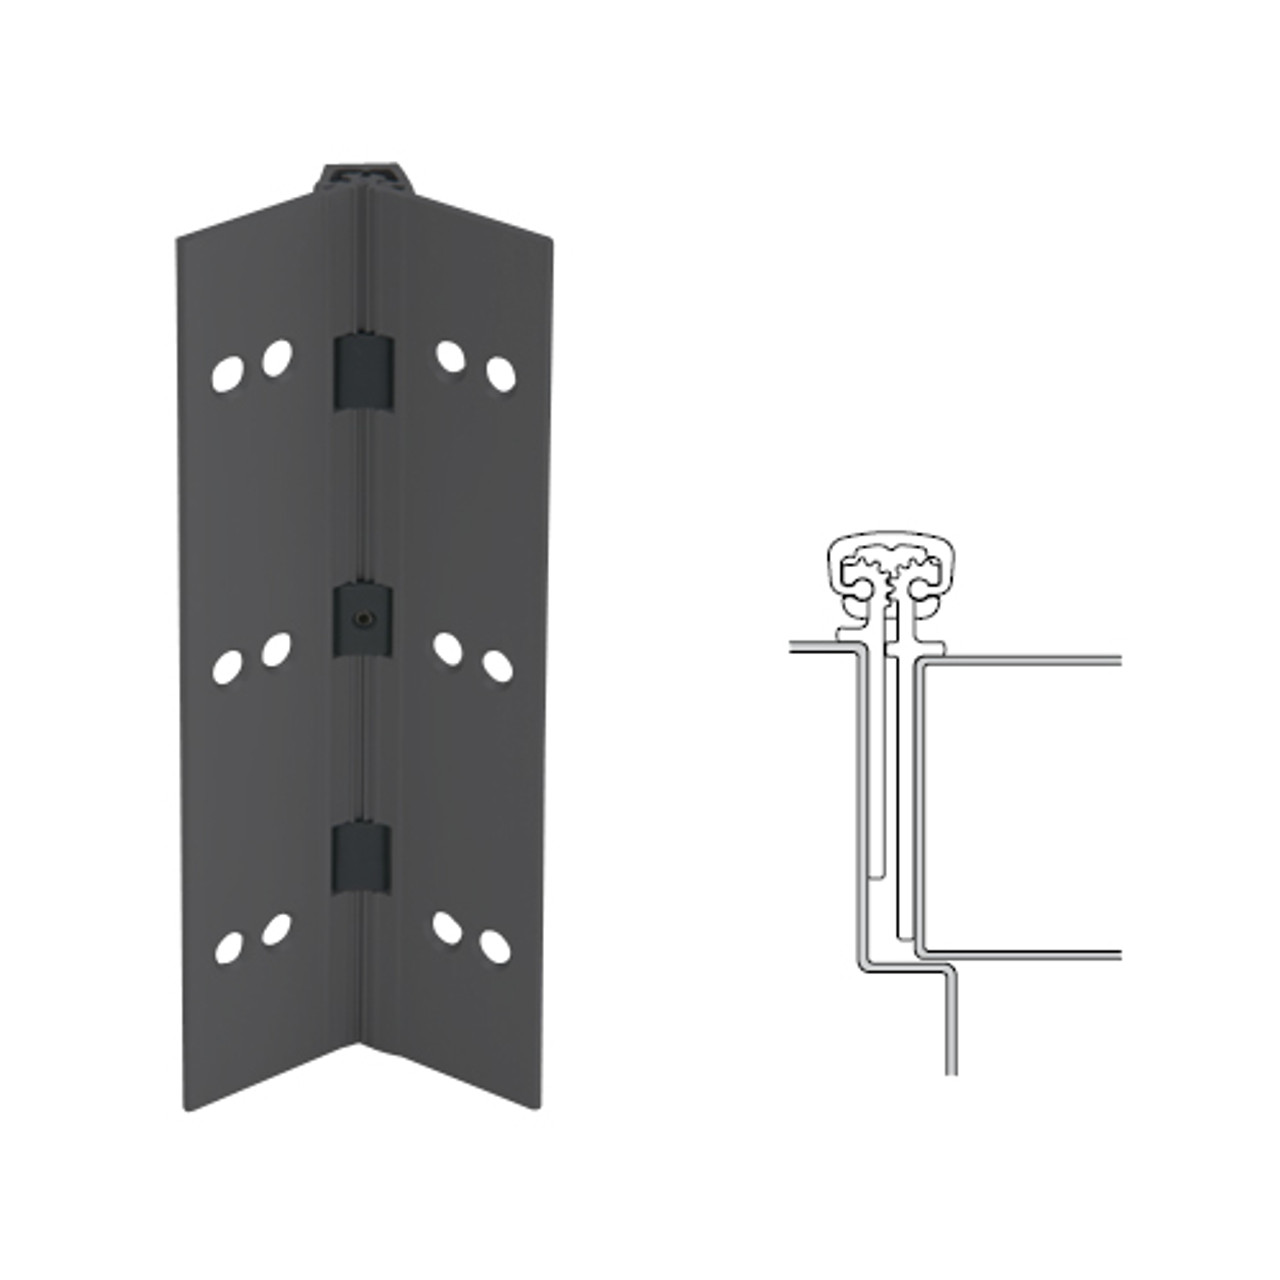 026XY-315AN-83-WD IVES Full Mortise Continuous Geared Hinges with Wood Screws in Anodized Black